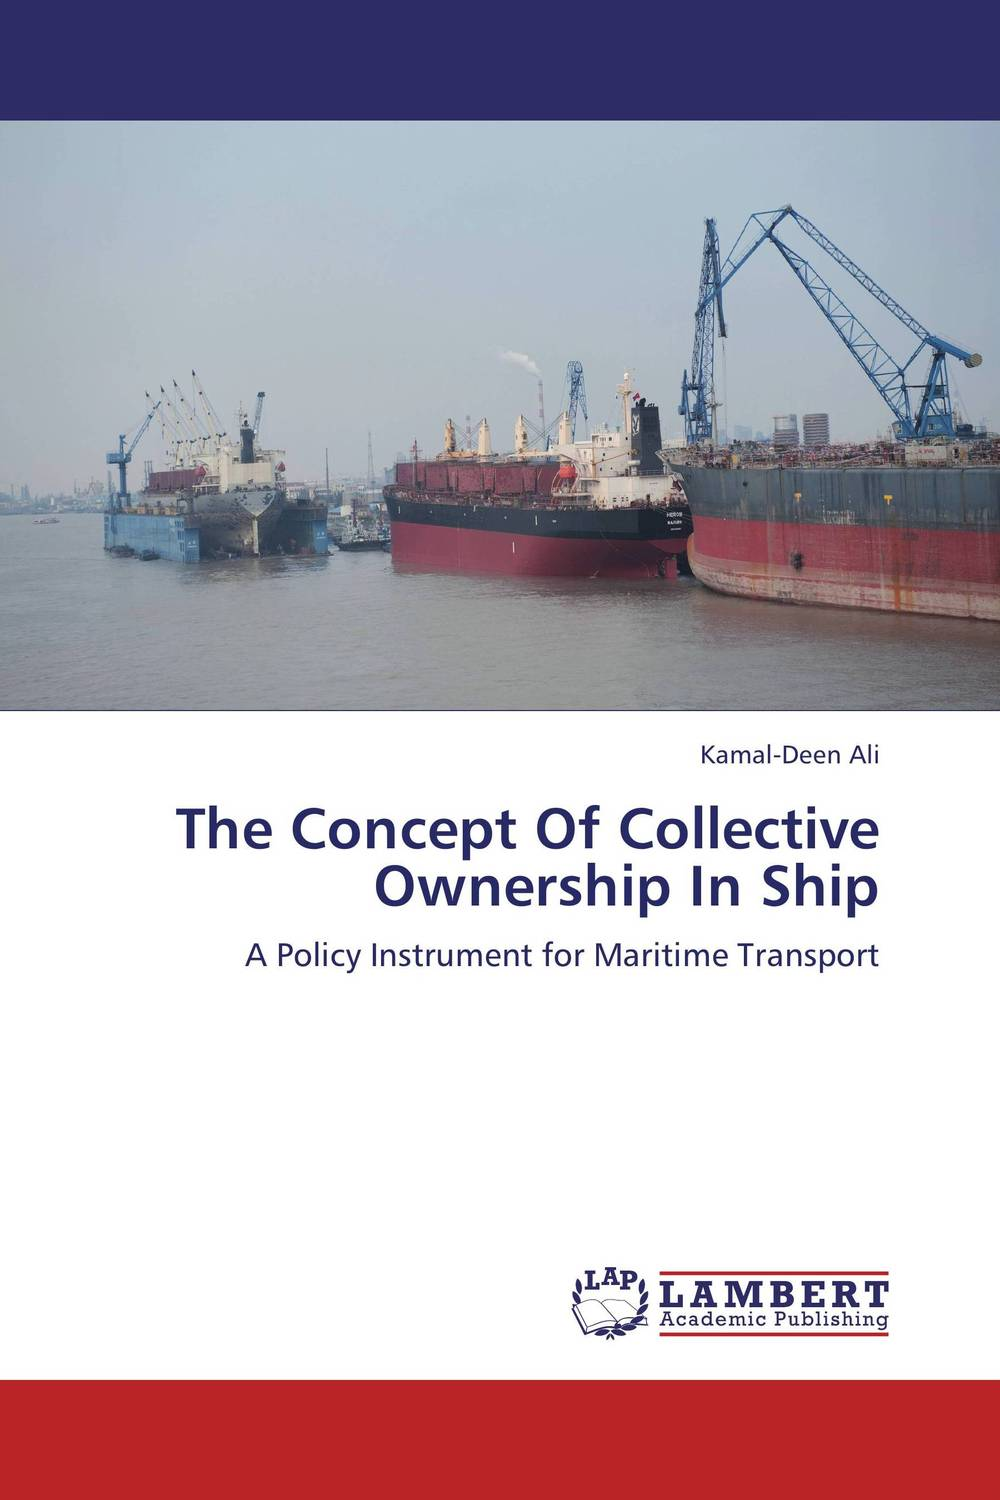 The Concept Of Collective Ownership In Ship maritime safety